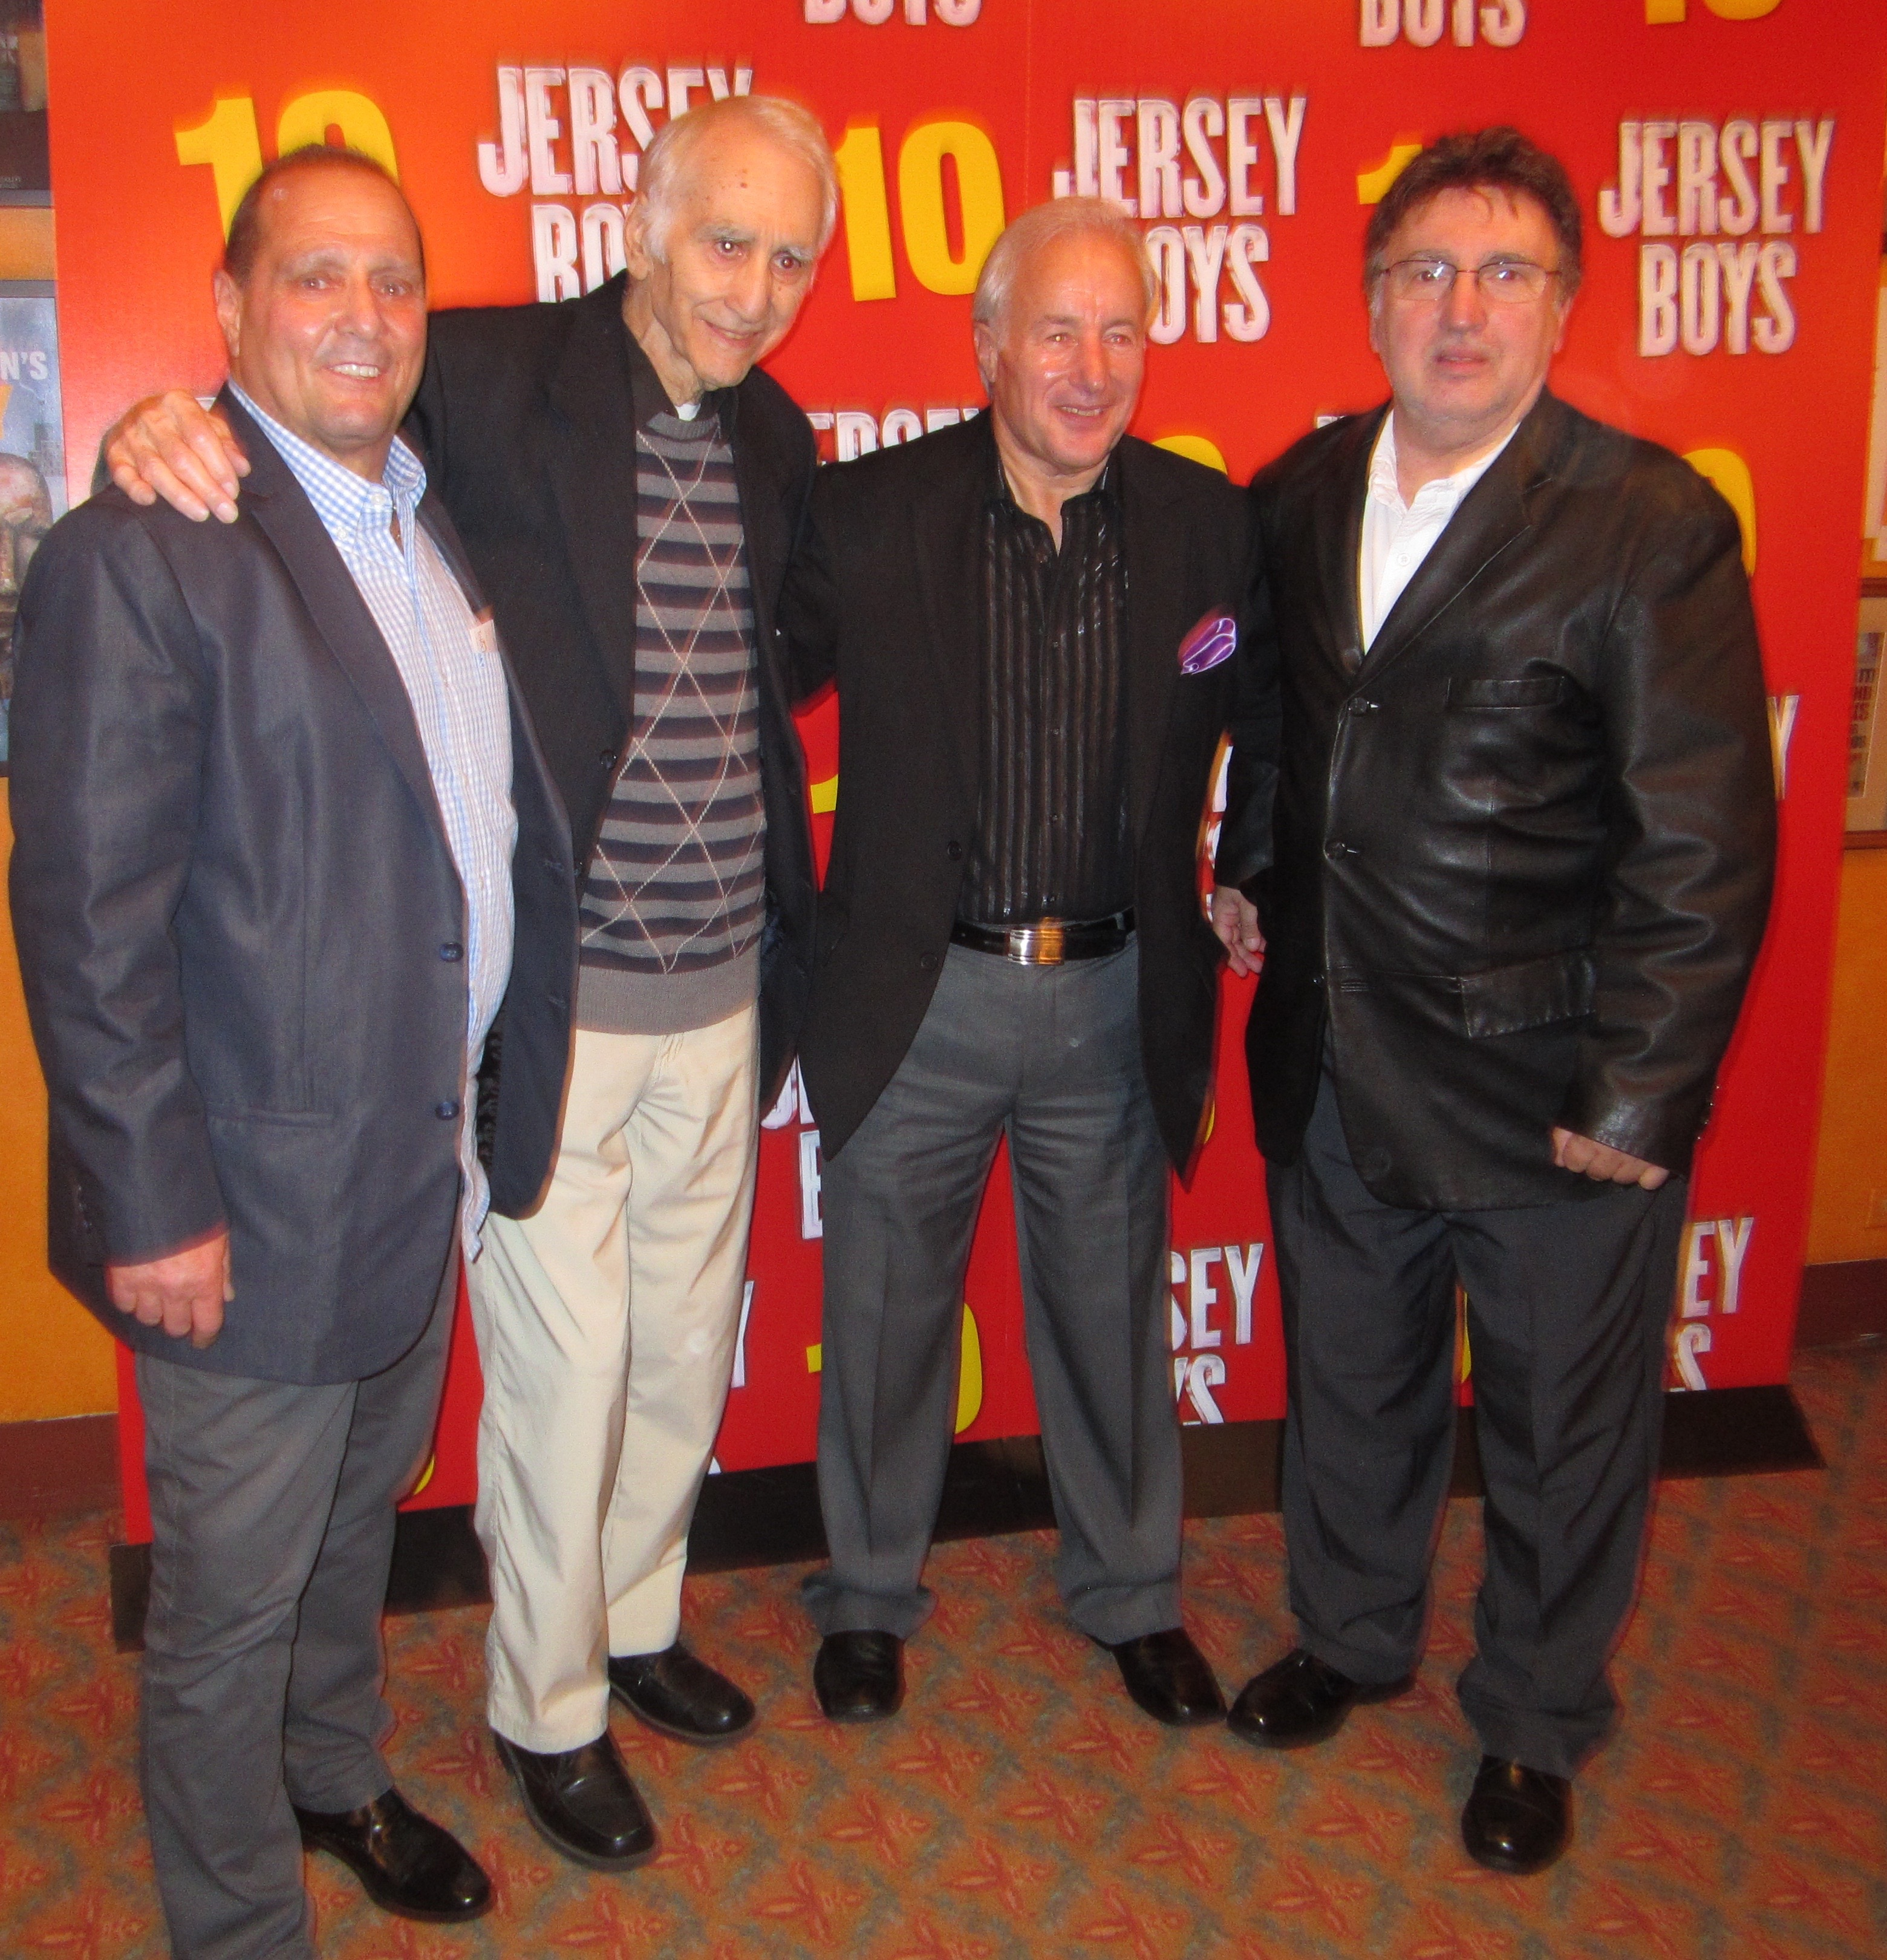 Celebrating 10 years of the Jersey Boys on Broadway